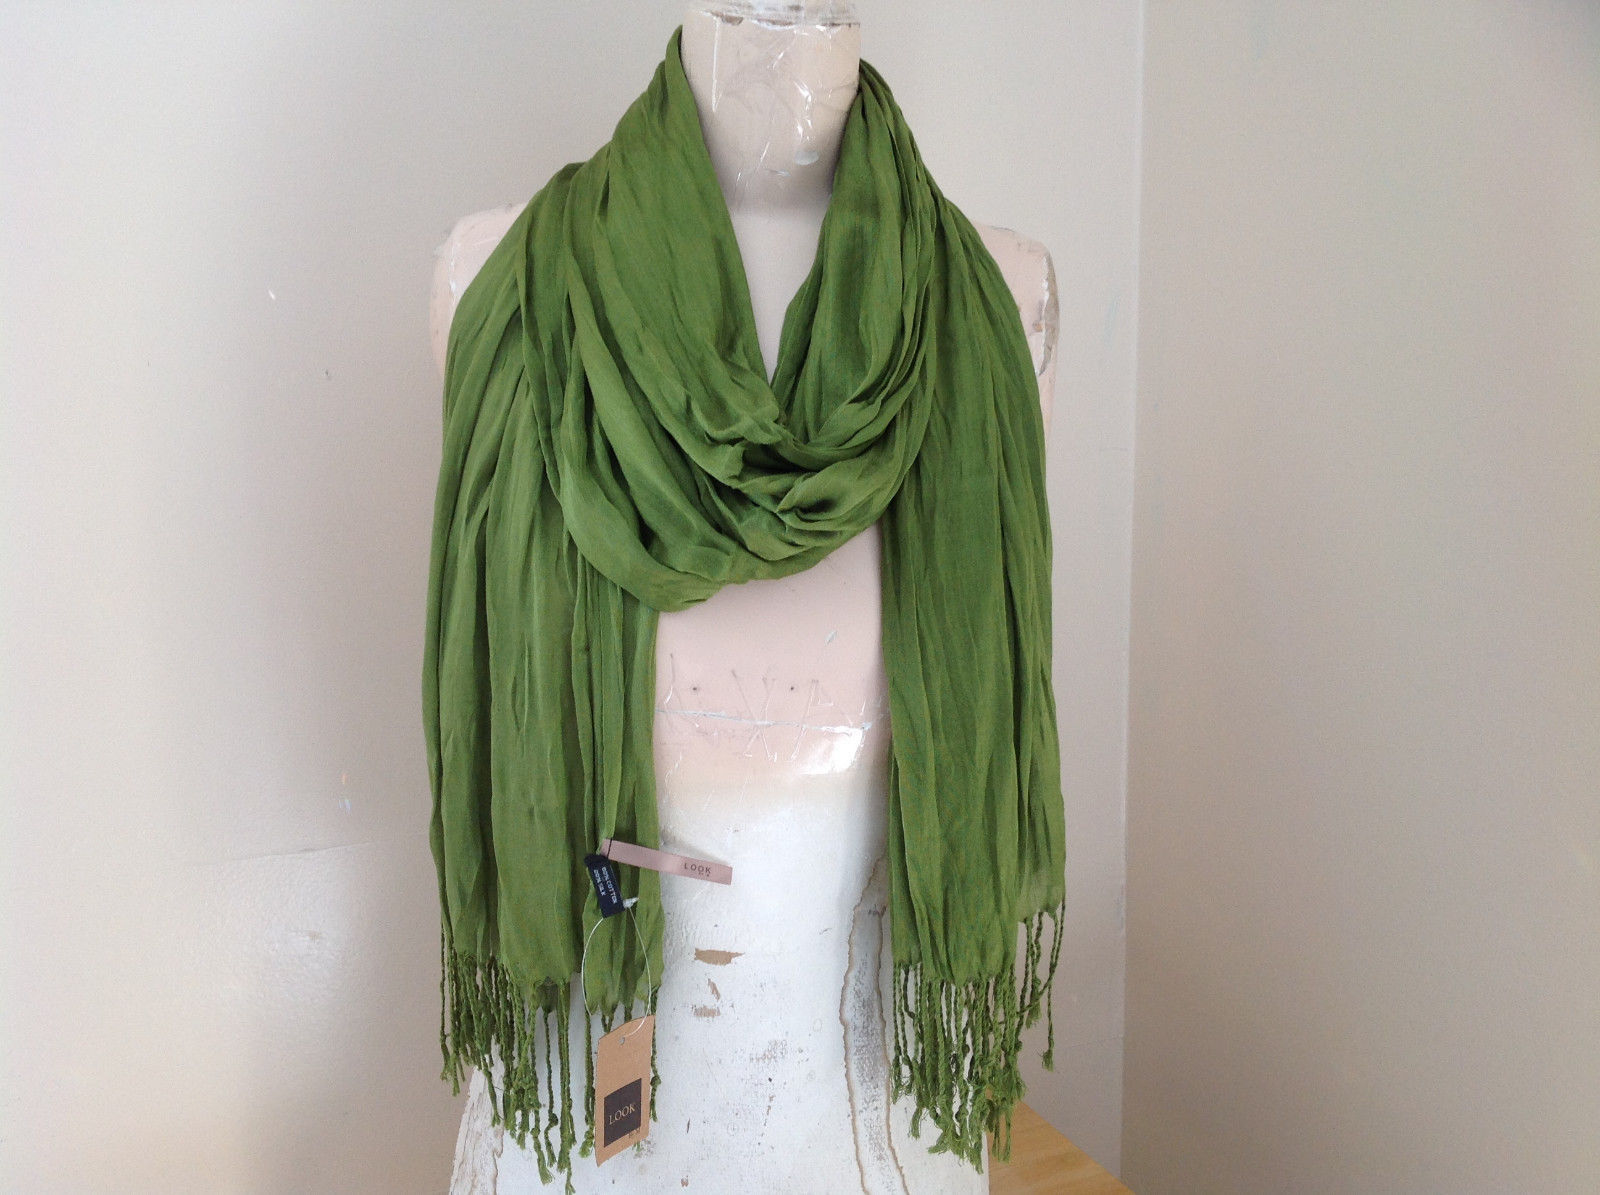 Olive Green Scrunch Style Silk Cotton Scarf with Tassels TAG ATTACHED by Look